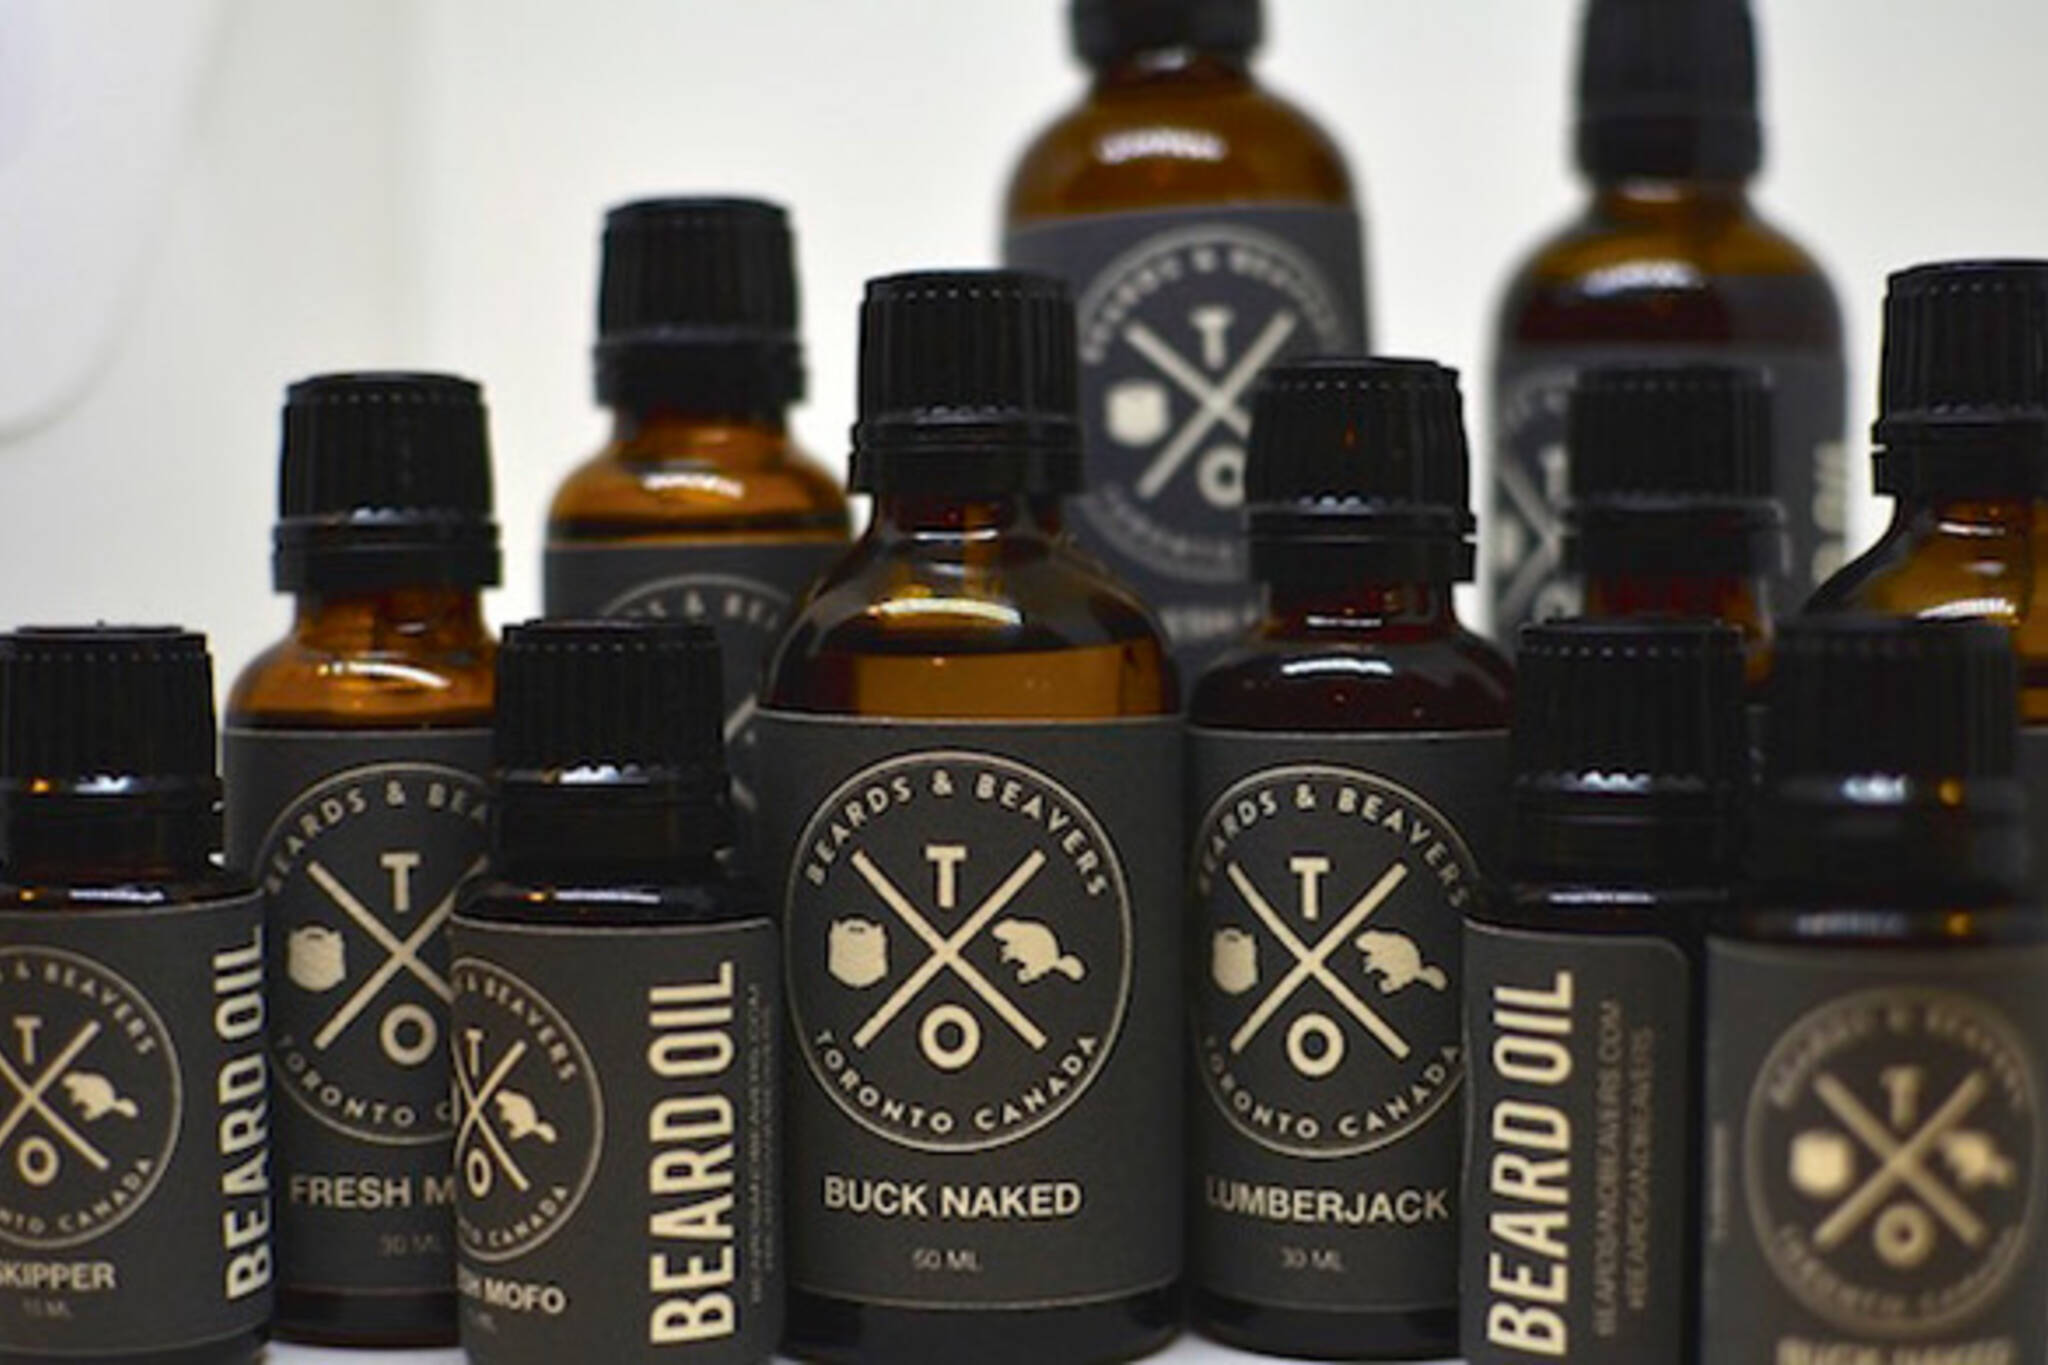 Mens Grooming Authority, Wahl, Launches Beard Care Line